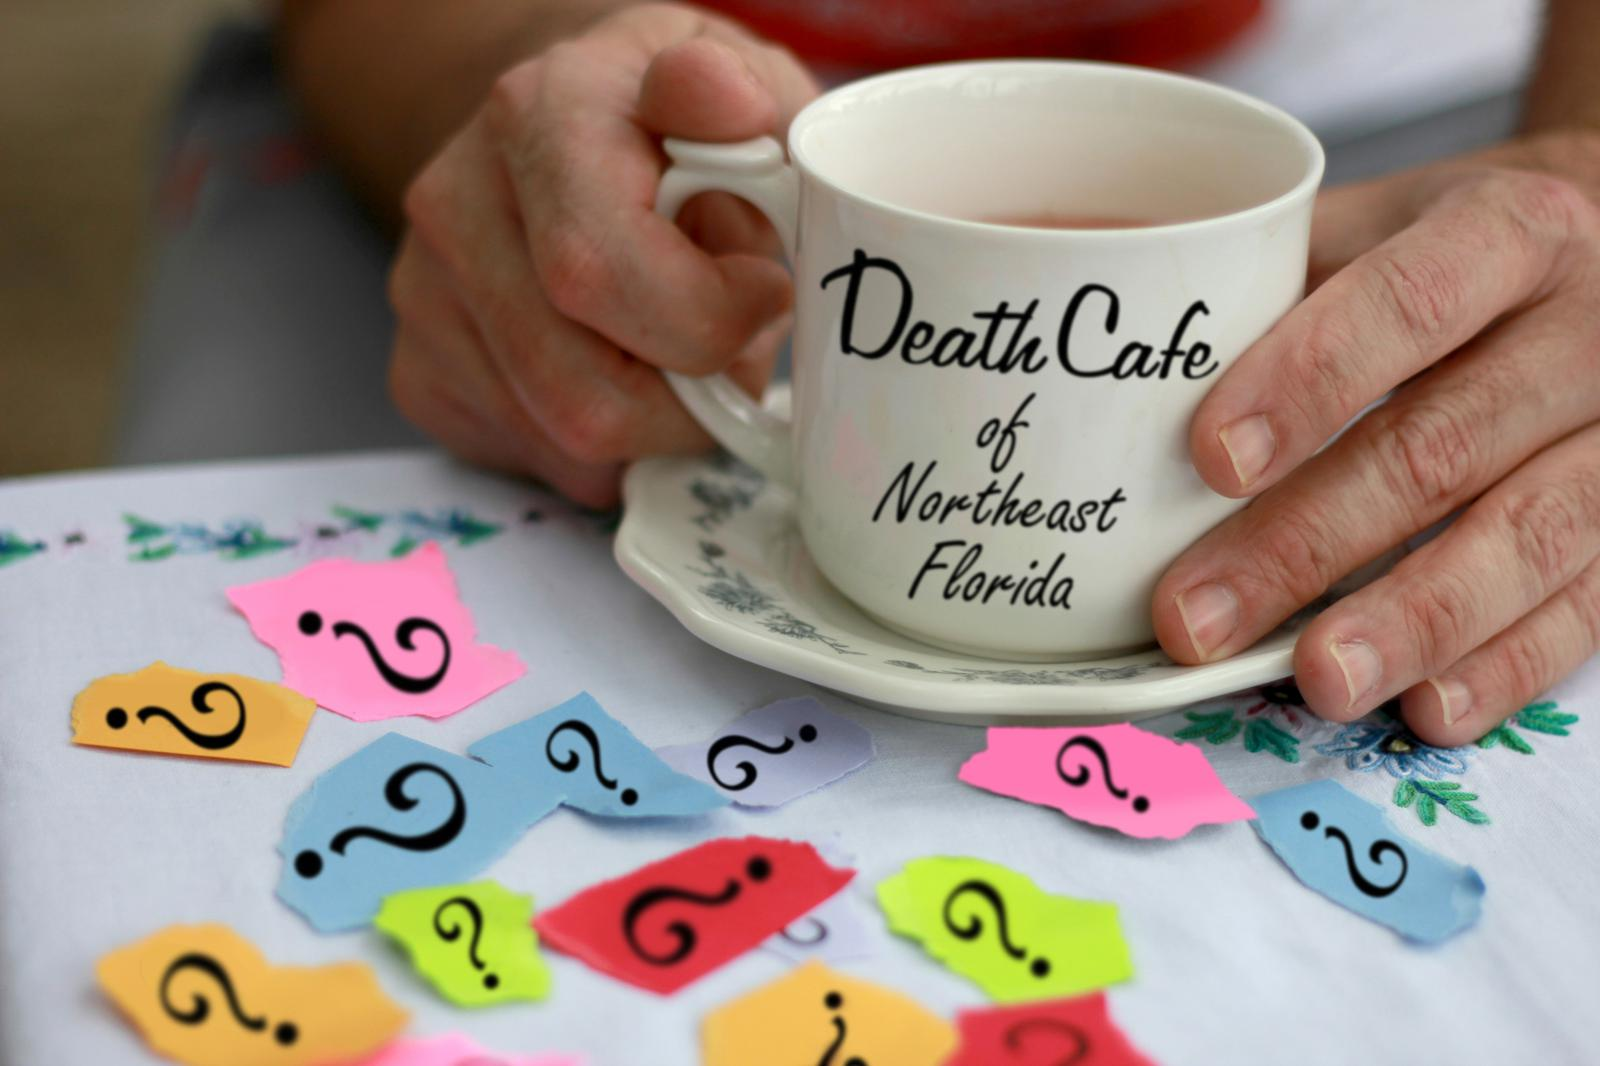 Death Cafe Northeast Florida - VIRTUAL MEETING